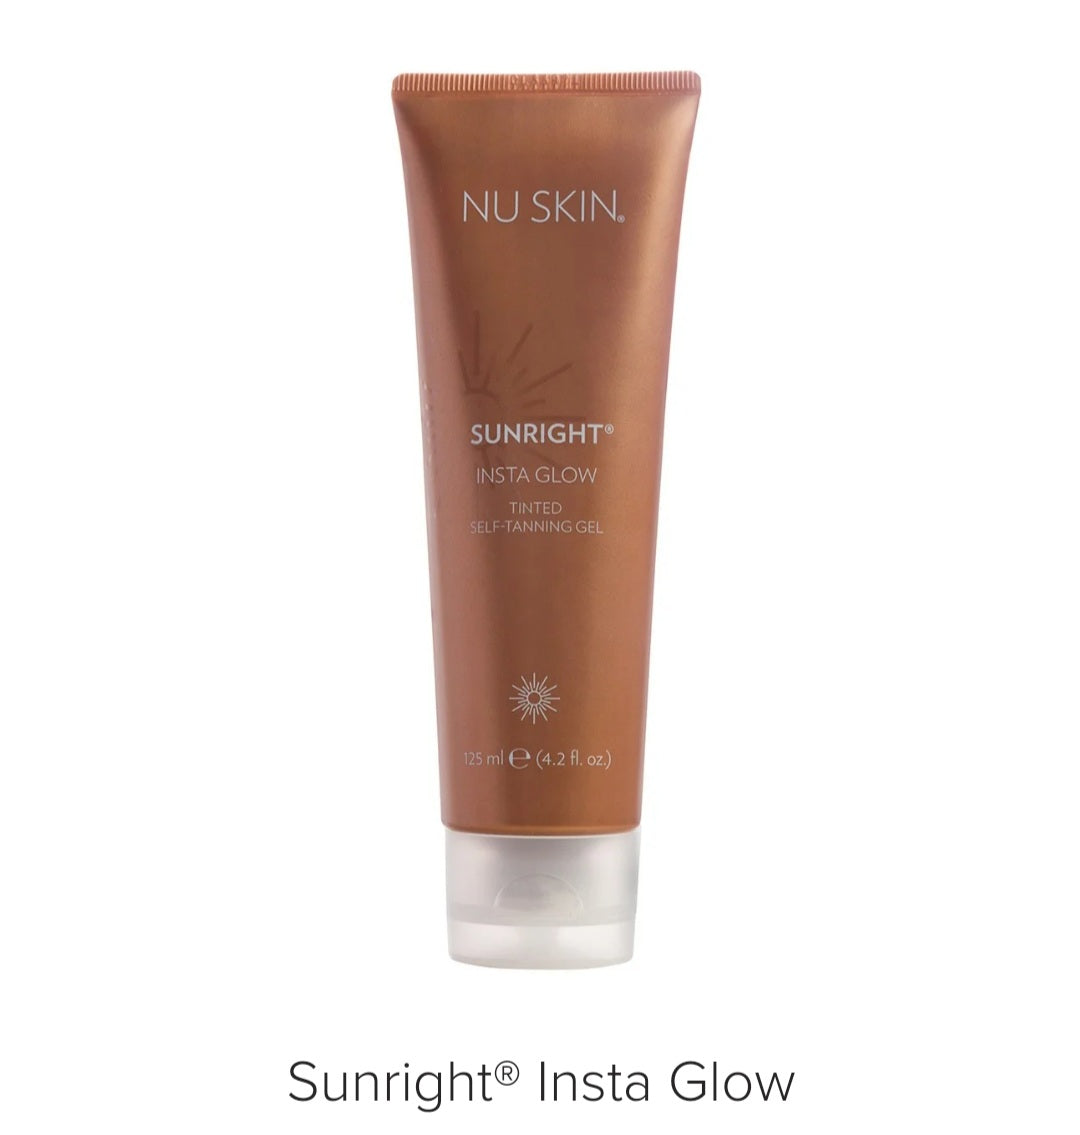 Sunright Insta Glow Sunless Tanner Lotion